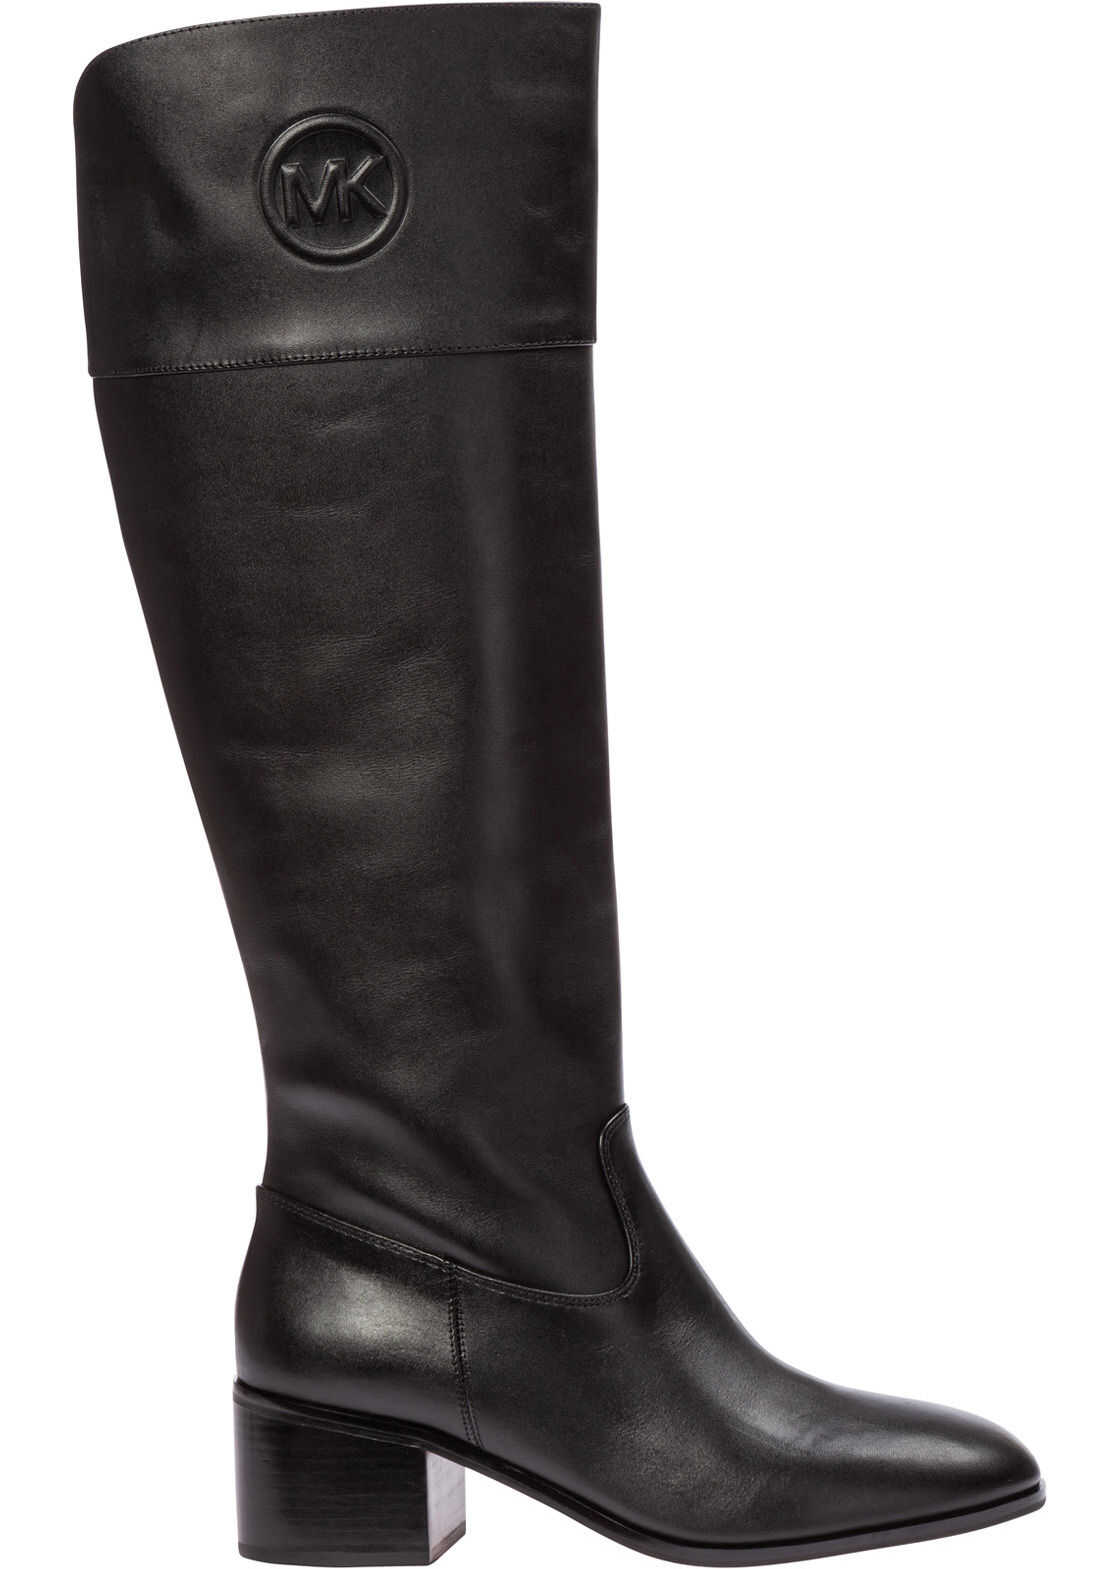 Michael Kors Boots Dylyn Black